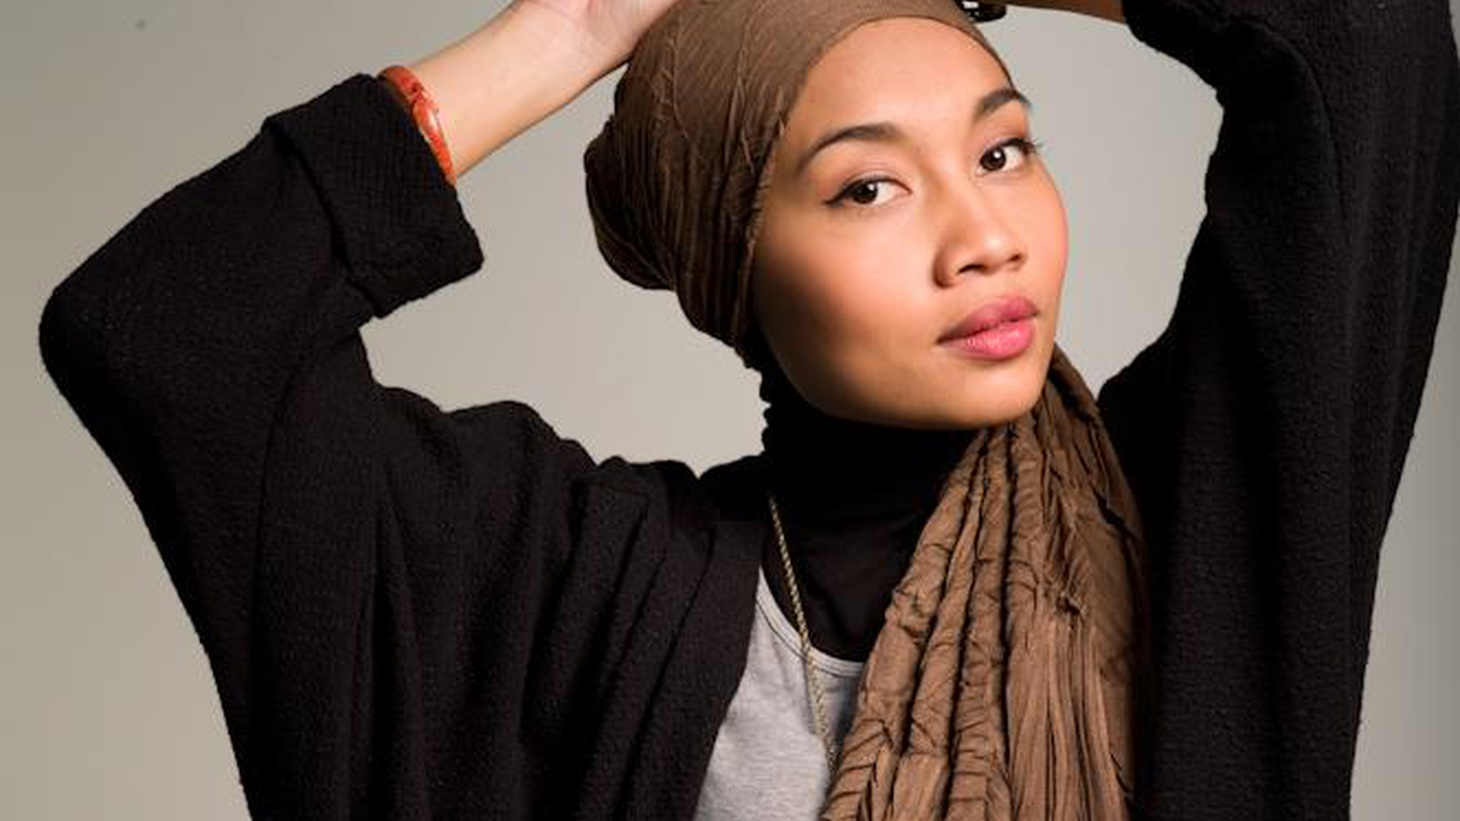 Malaysian-based singer Yuna has a seductive vocal style.